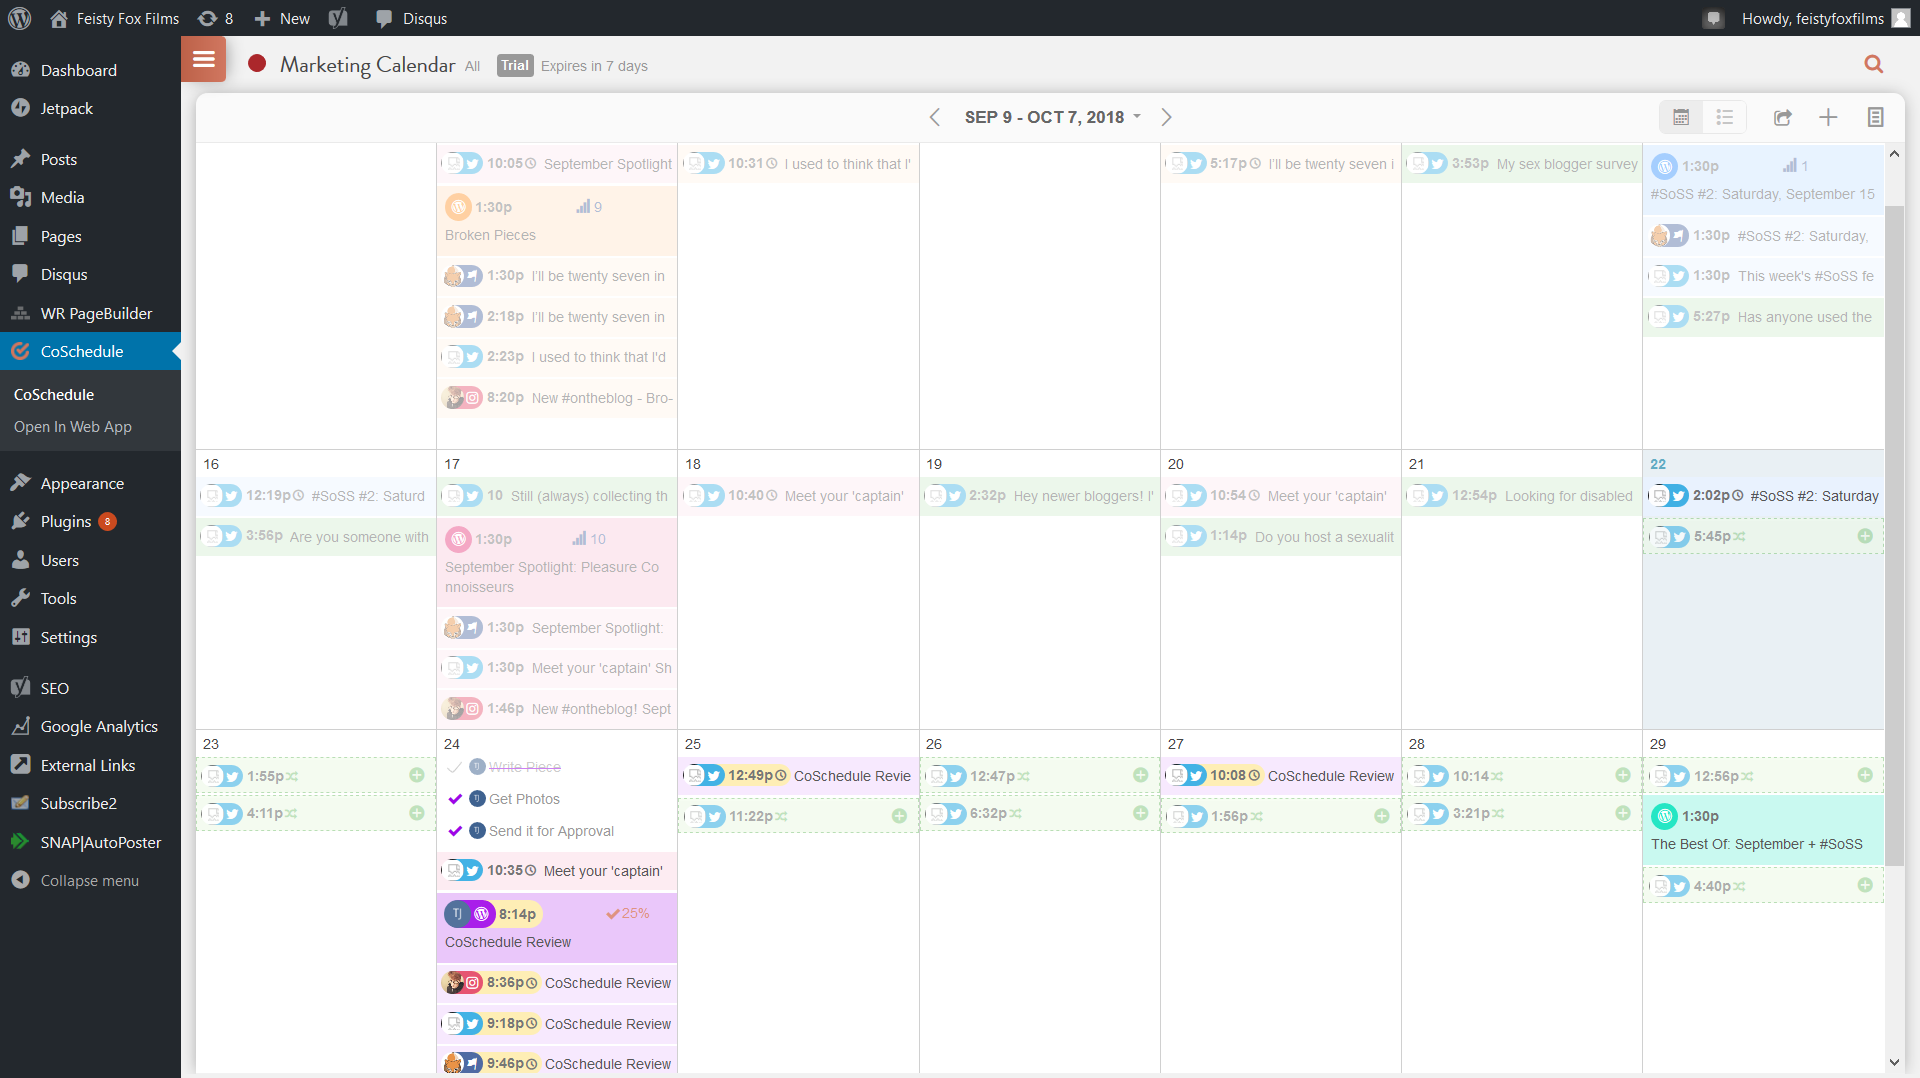 Three weeks of a colour-coded CoSchedule calendar with blog posts, social media, tasks to do, and requeue slots